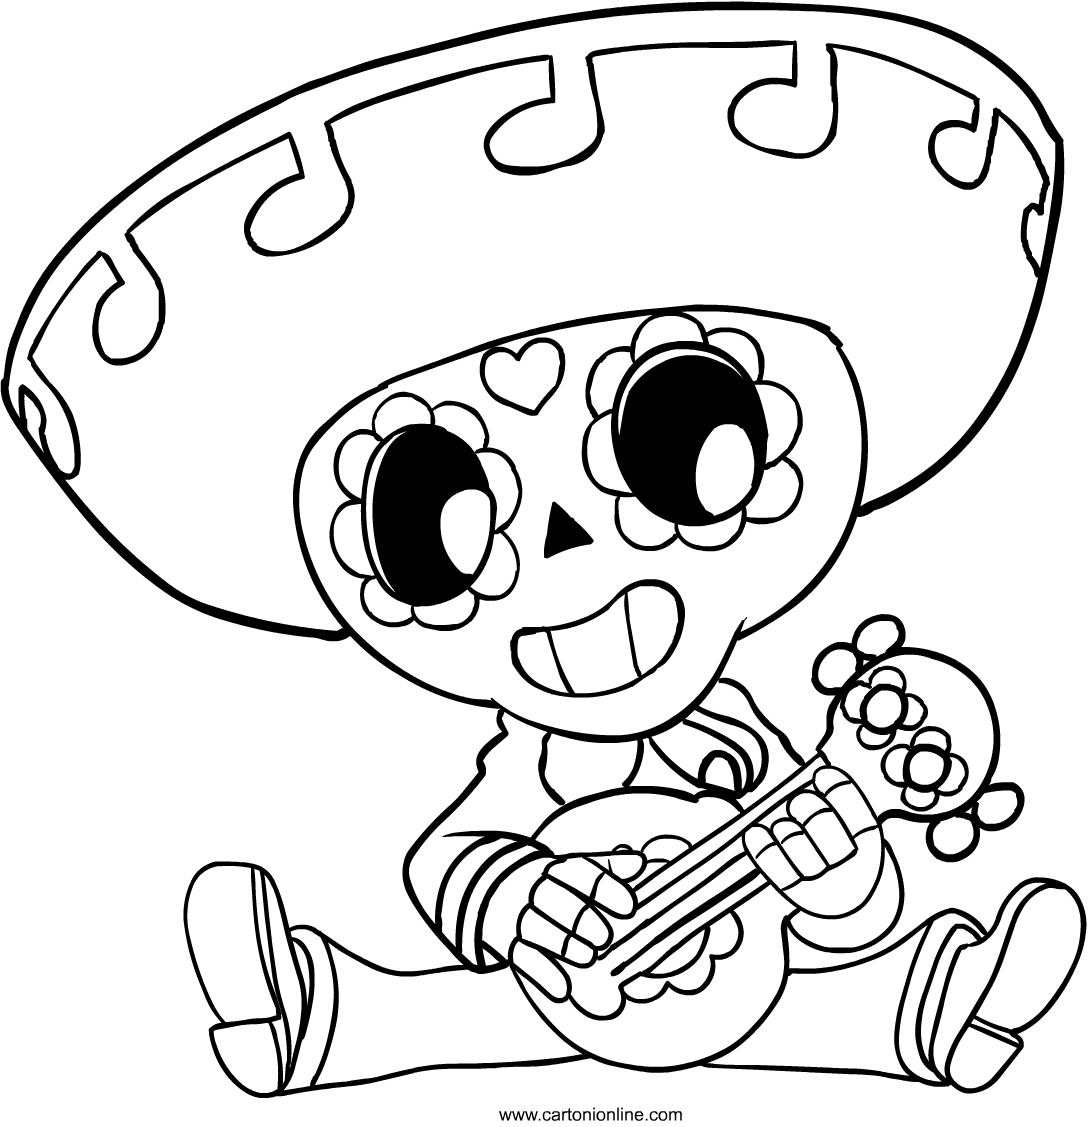 Poco from Brawl Stars coloring page